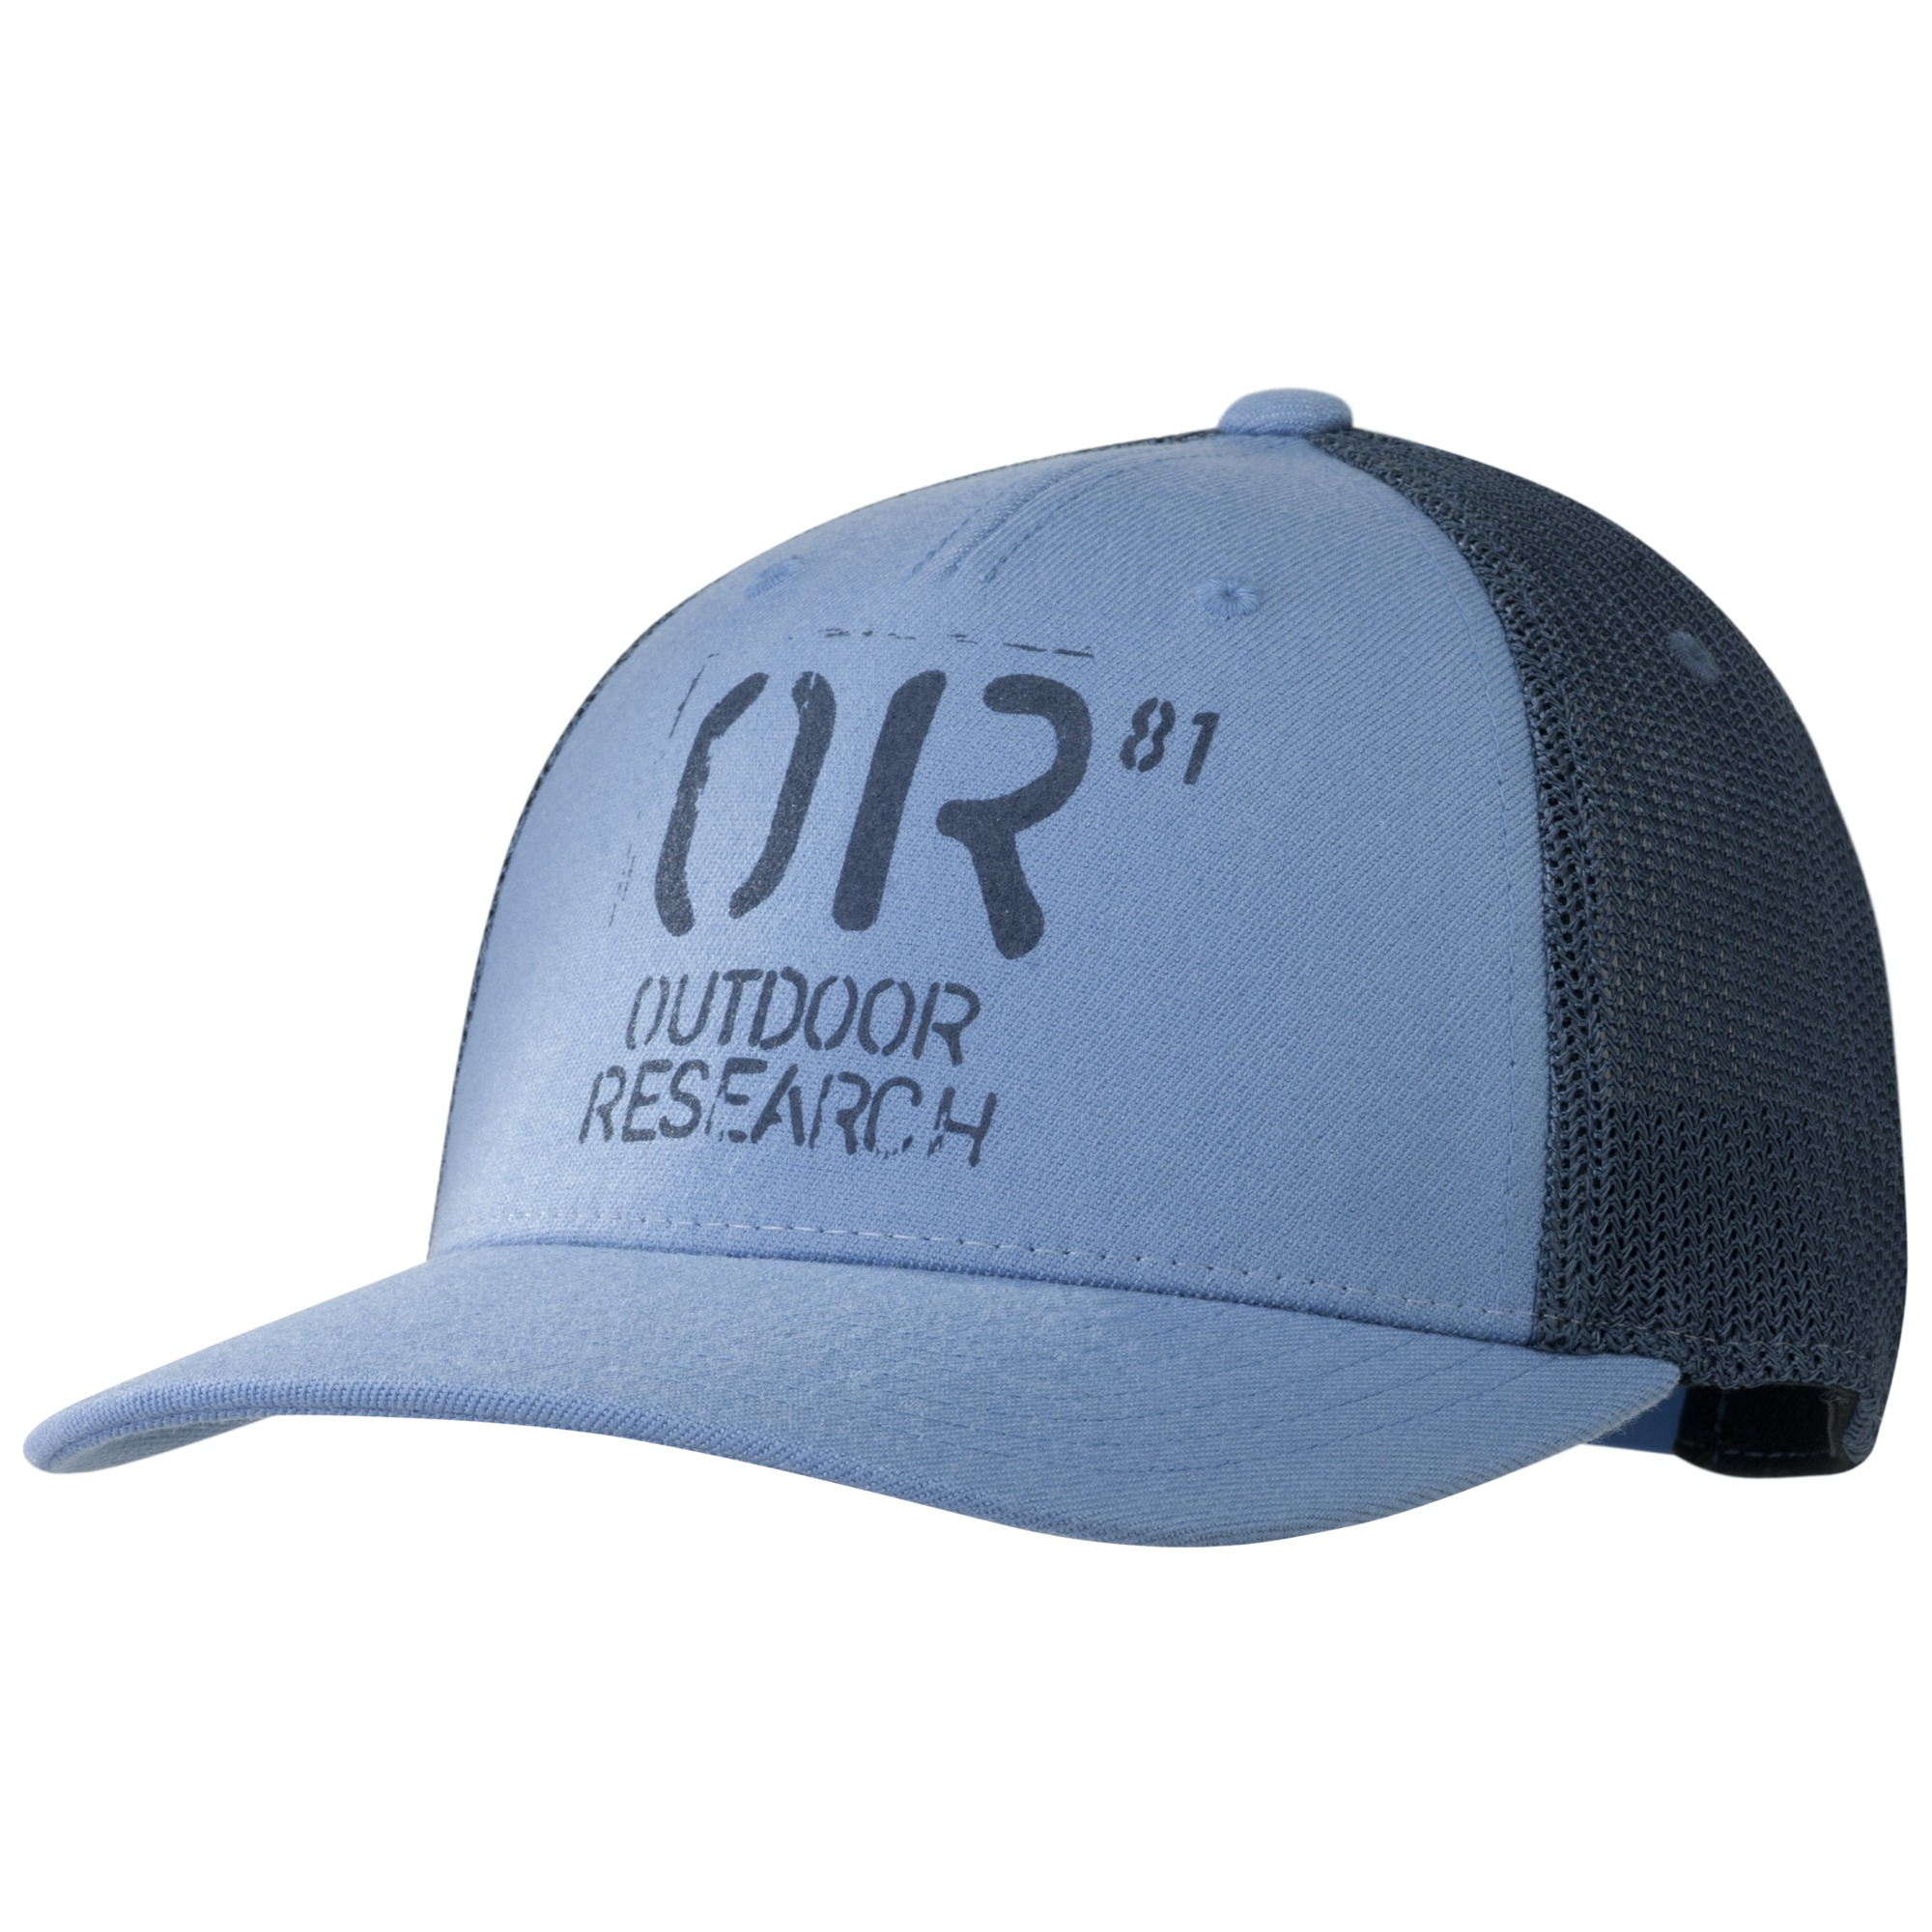 2bd951475fc Cargo Trucker Cap - vintage | Outdoor Research